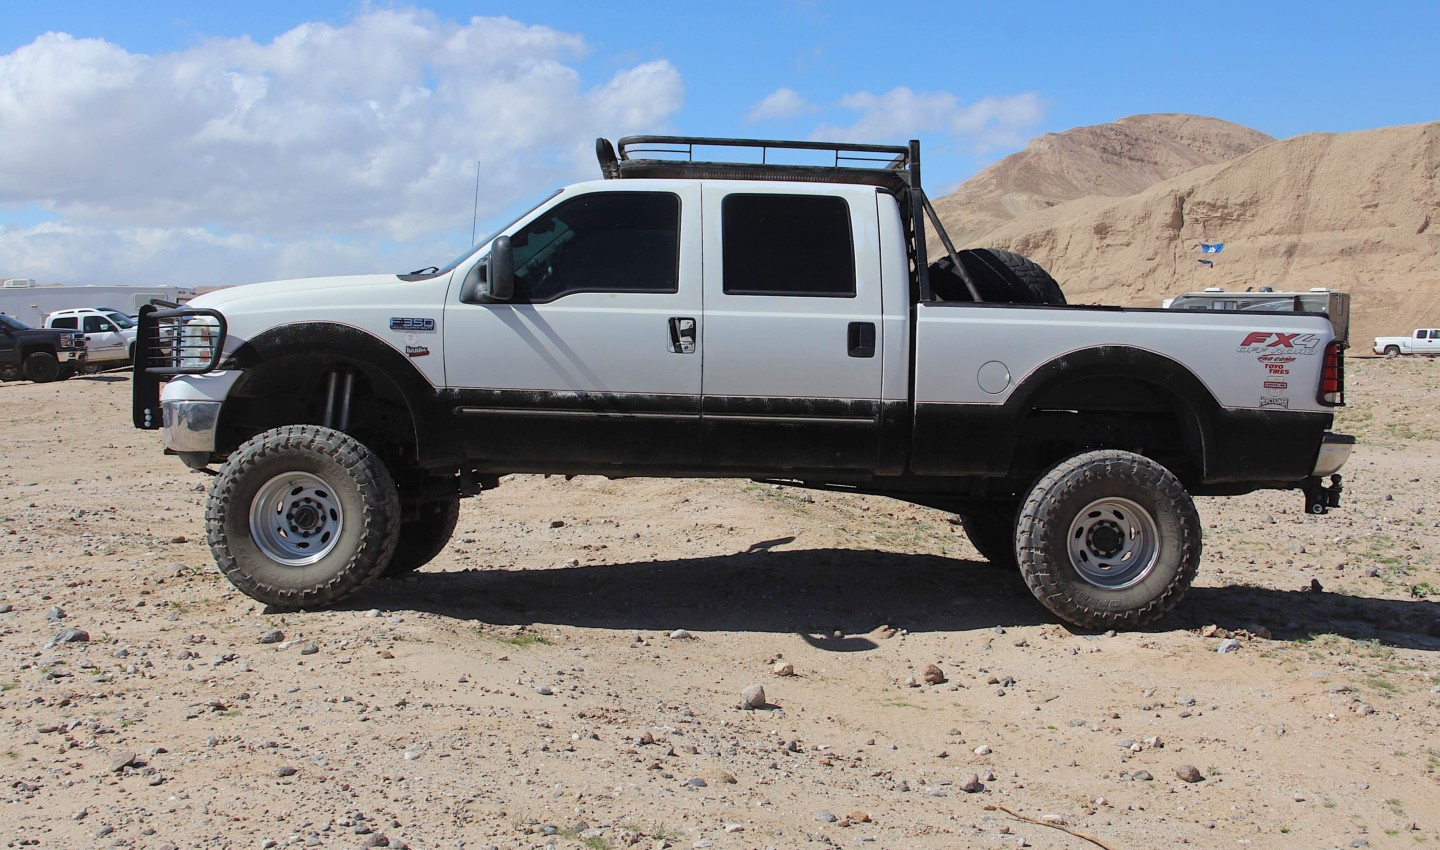 Superb Duty: Jose Marquez's 1999 Ford F-350